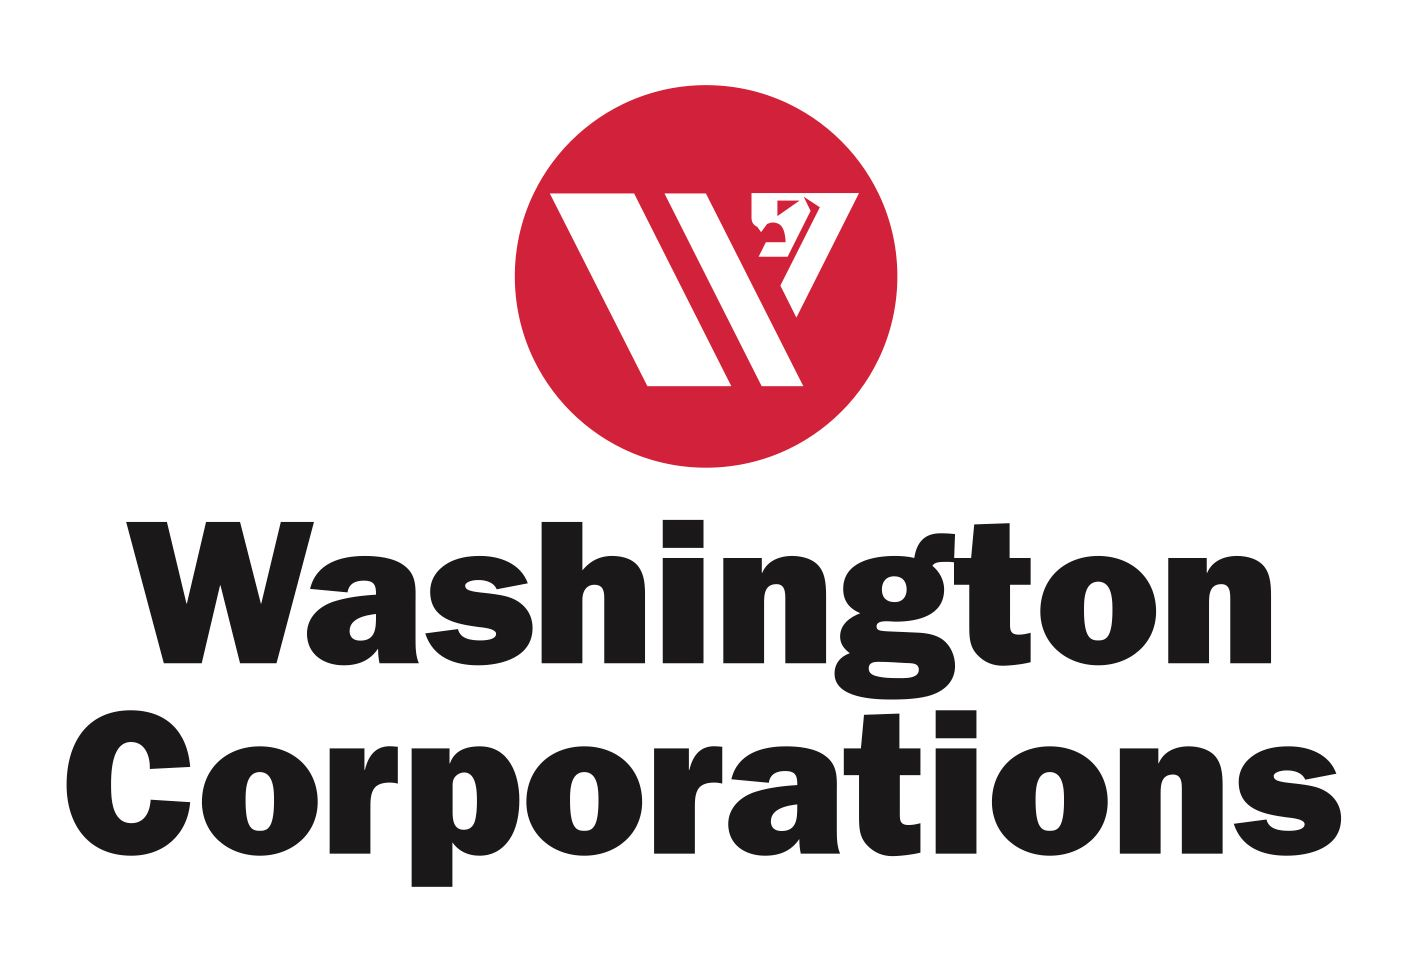 The Washington Companies